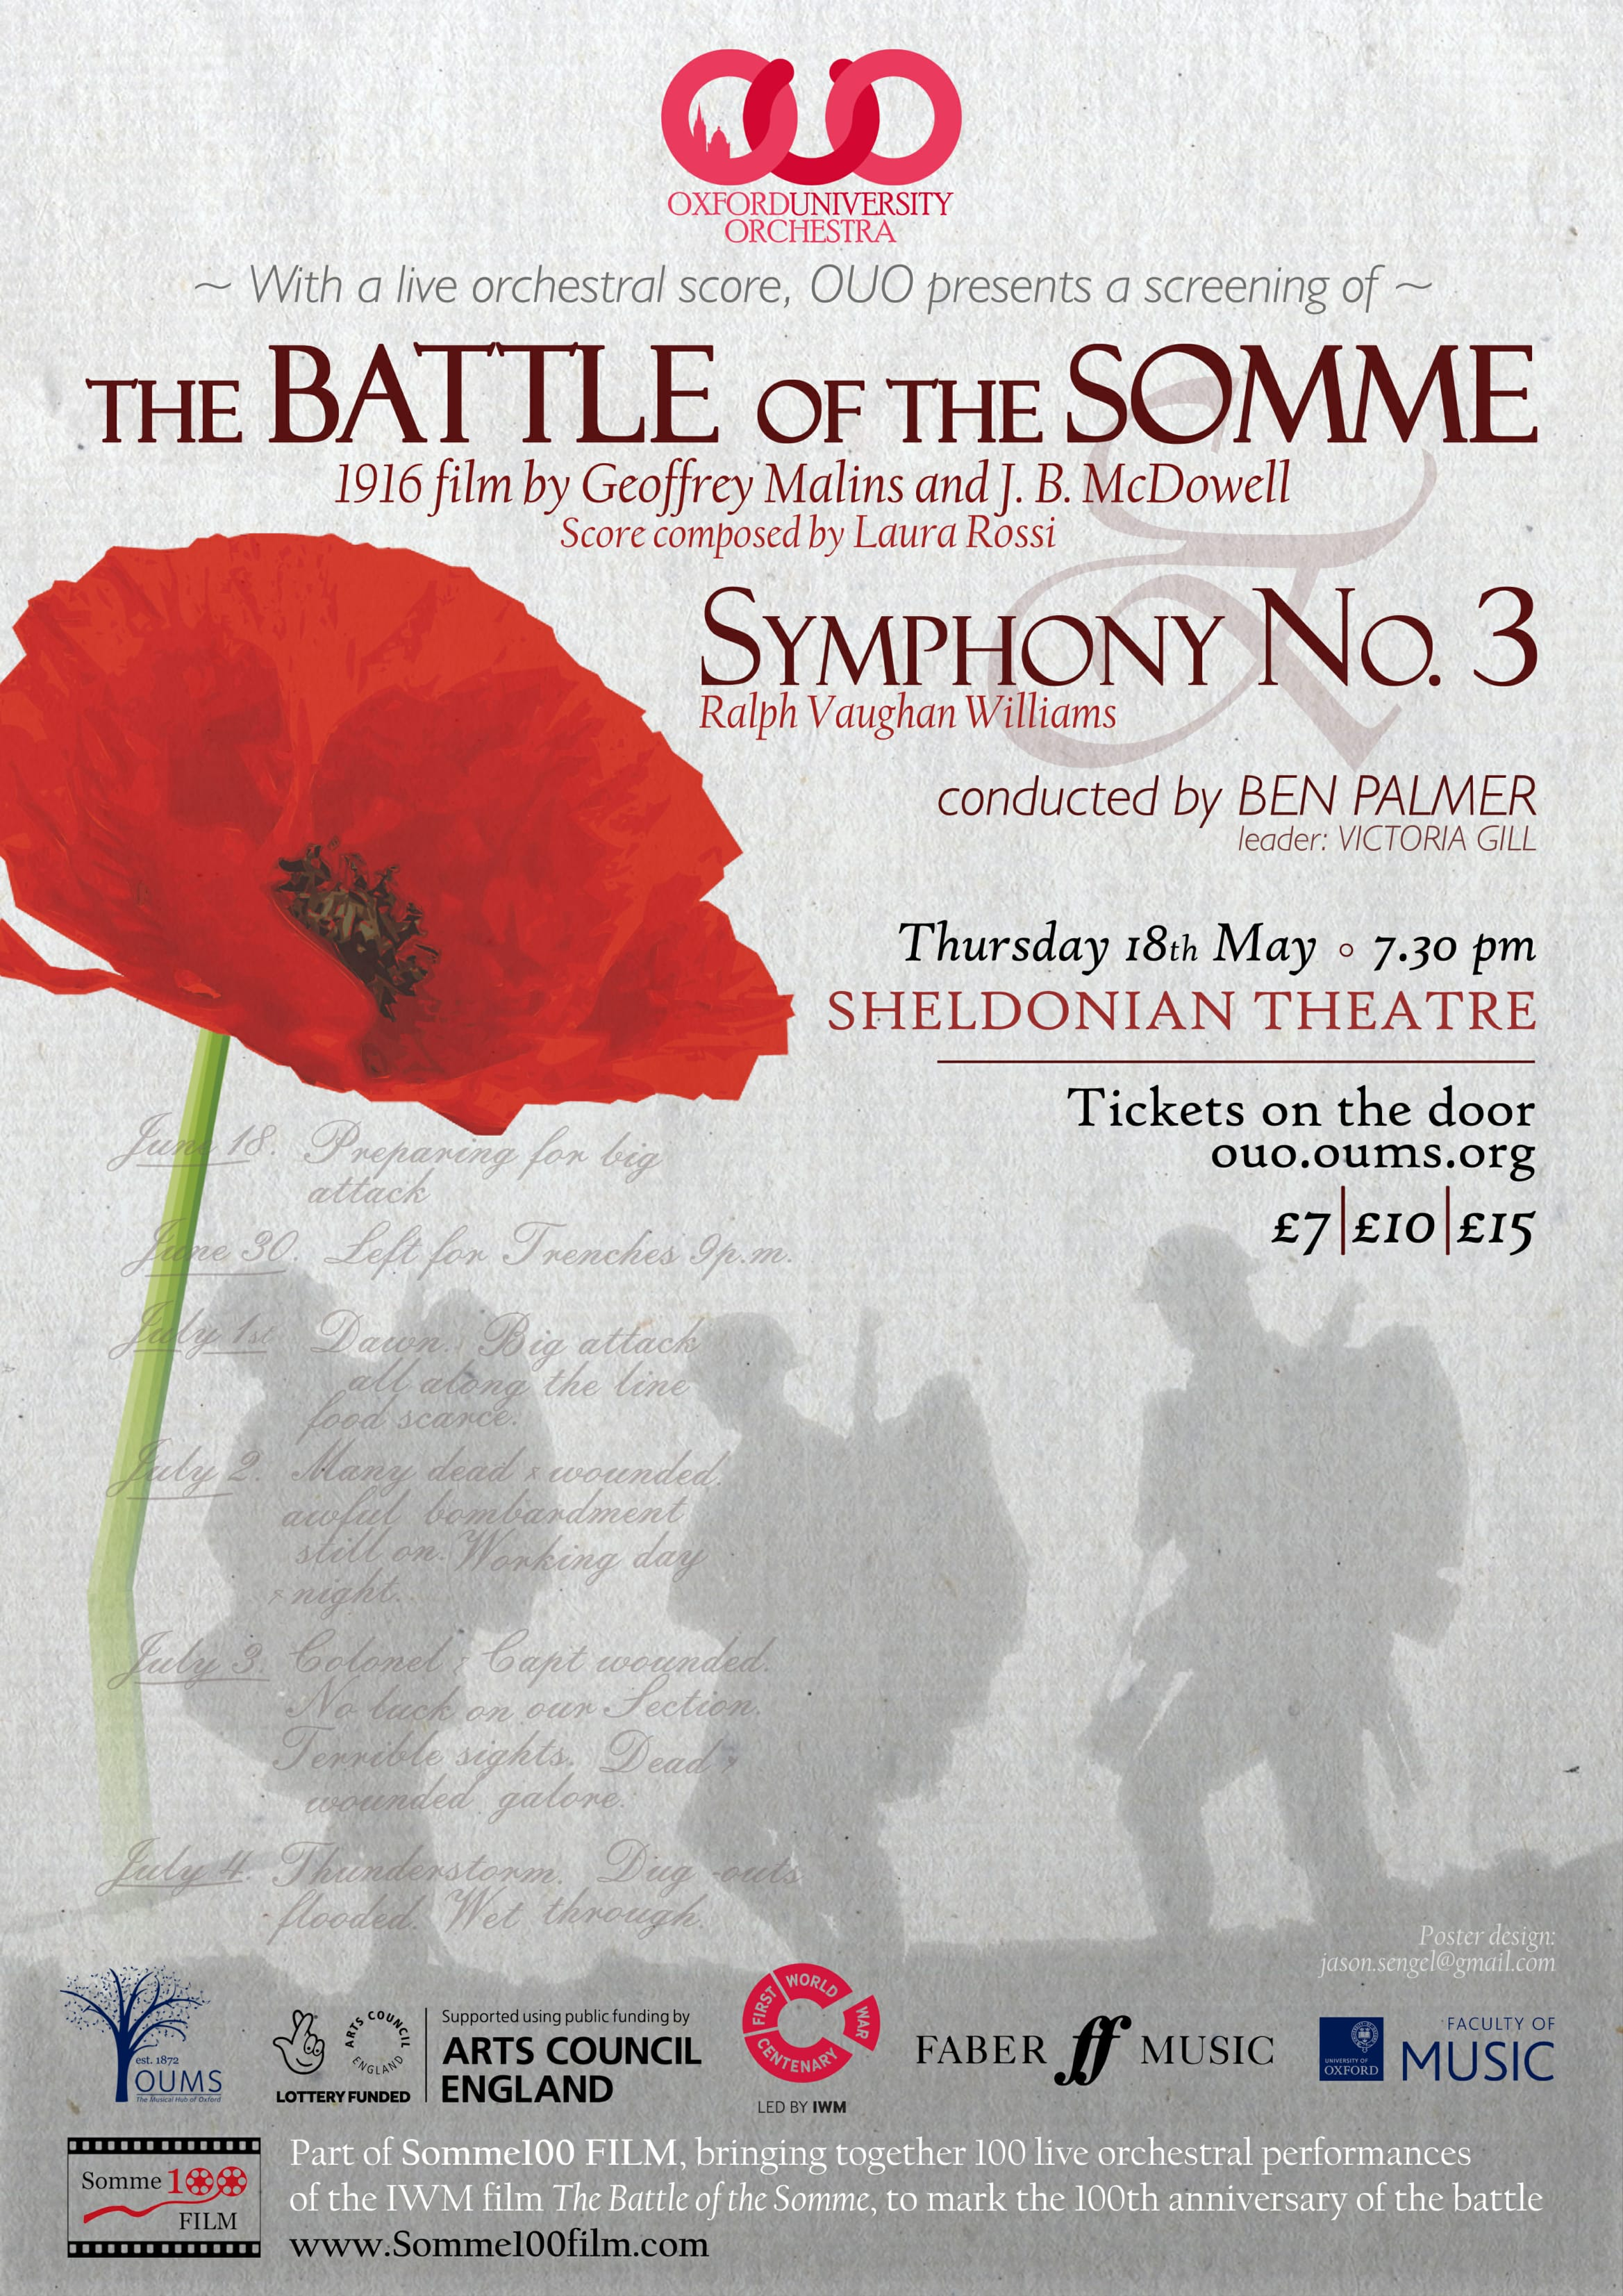 BUY TICKETS FOR 18TH MAY CONCERT HERE